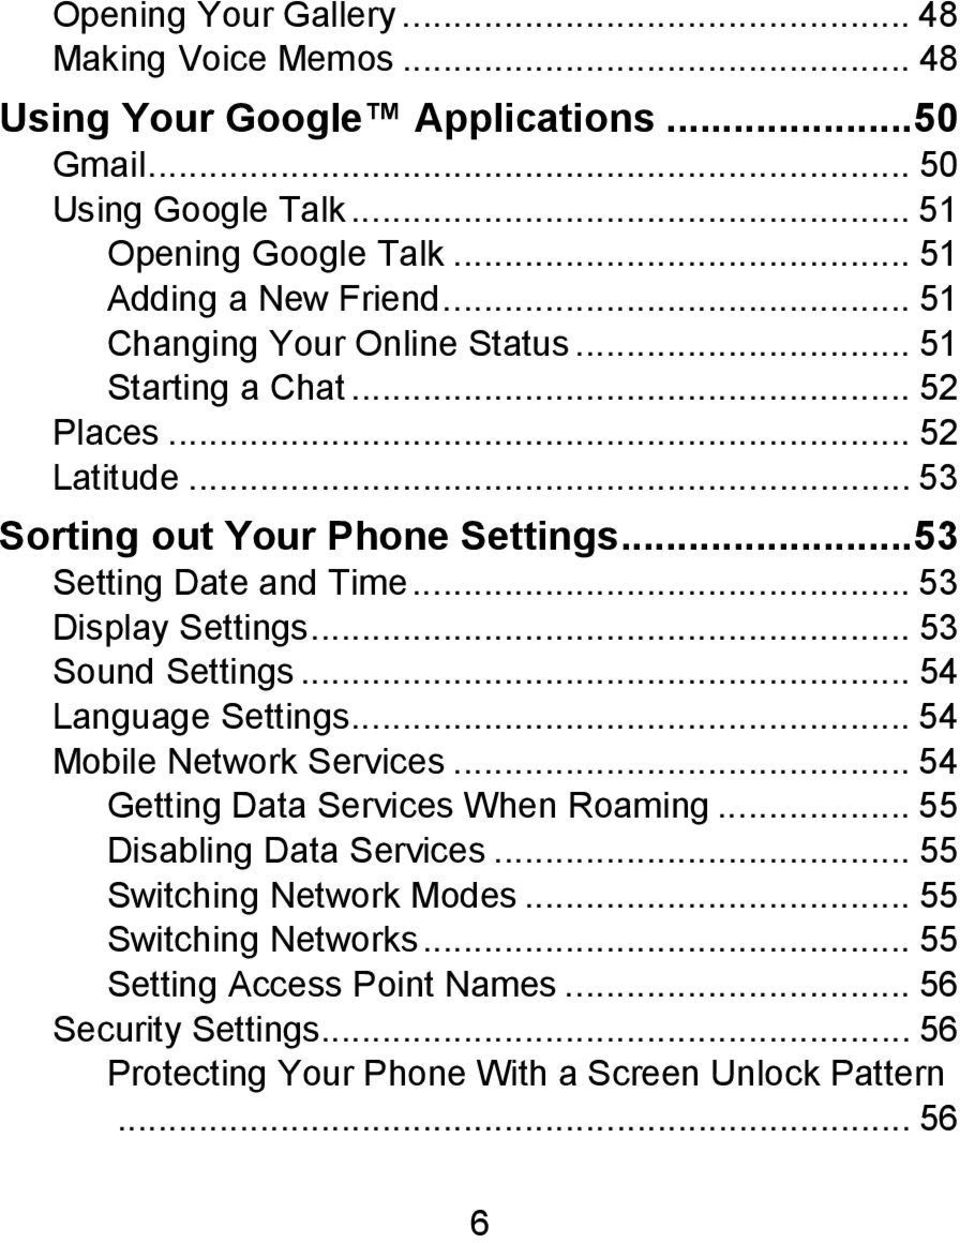 .. 53 Setting Date and Time... 53 Display Settings... 53 Sound Settings... 54 Language Settings... 54 Mobile Network Services... 54 Getting Data Services When Roaming.